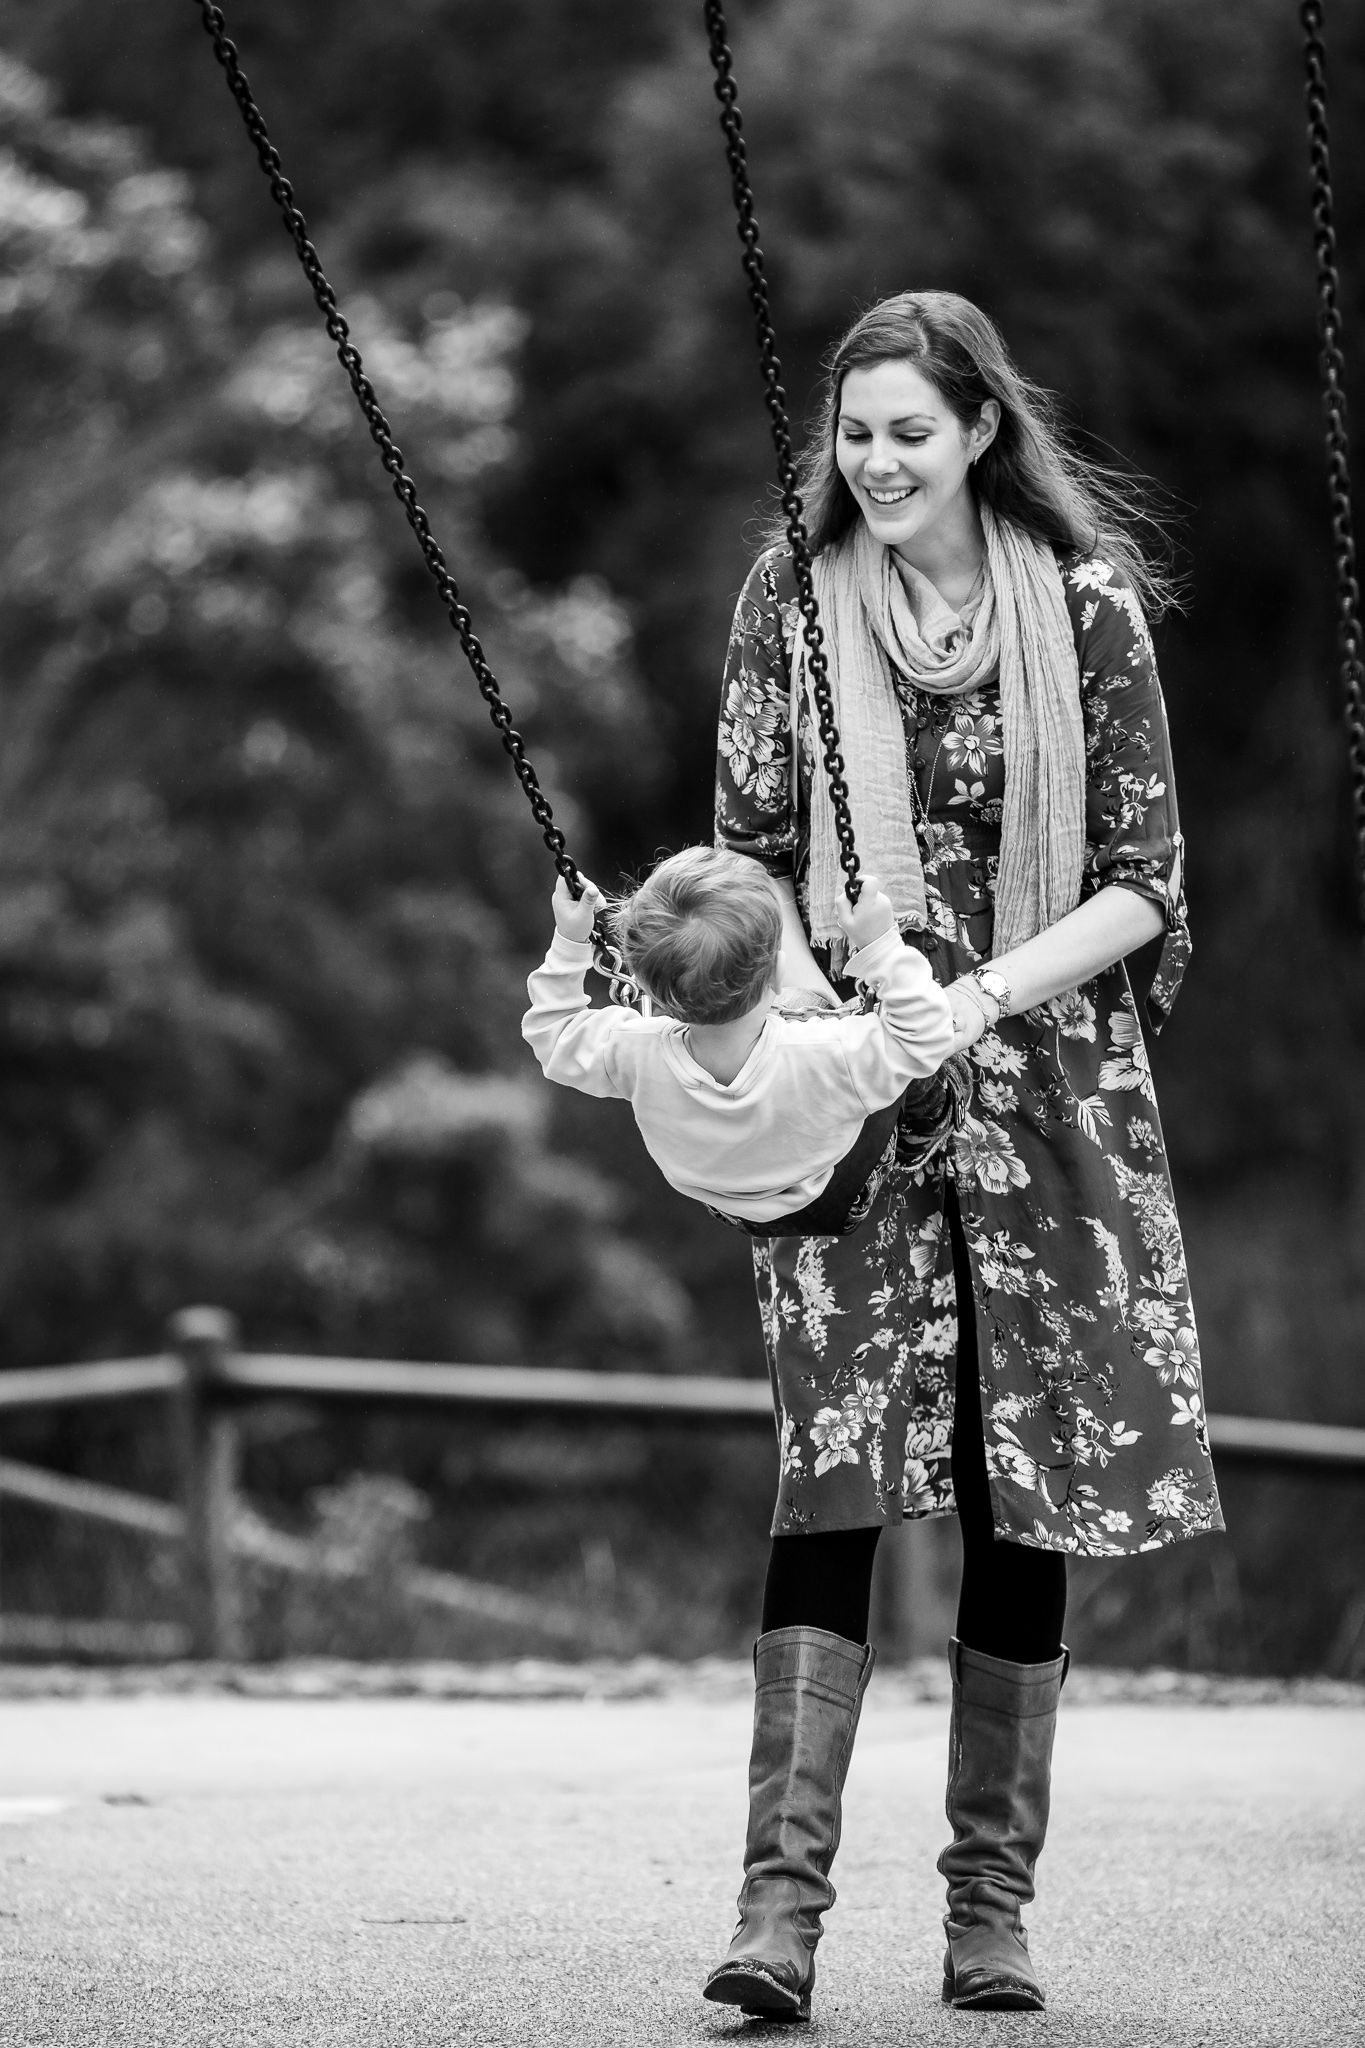 Jack-and-Purdy-Perth-Family-Photographer-19.jpg